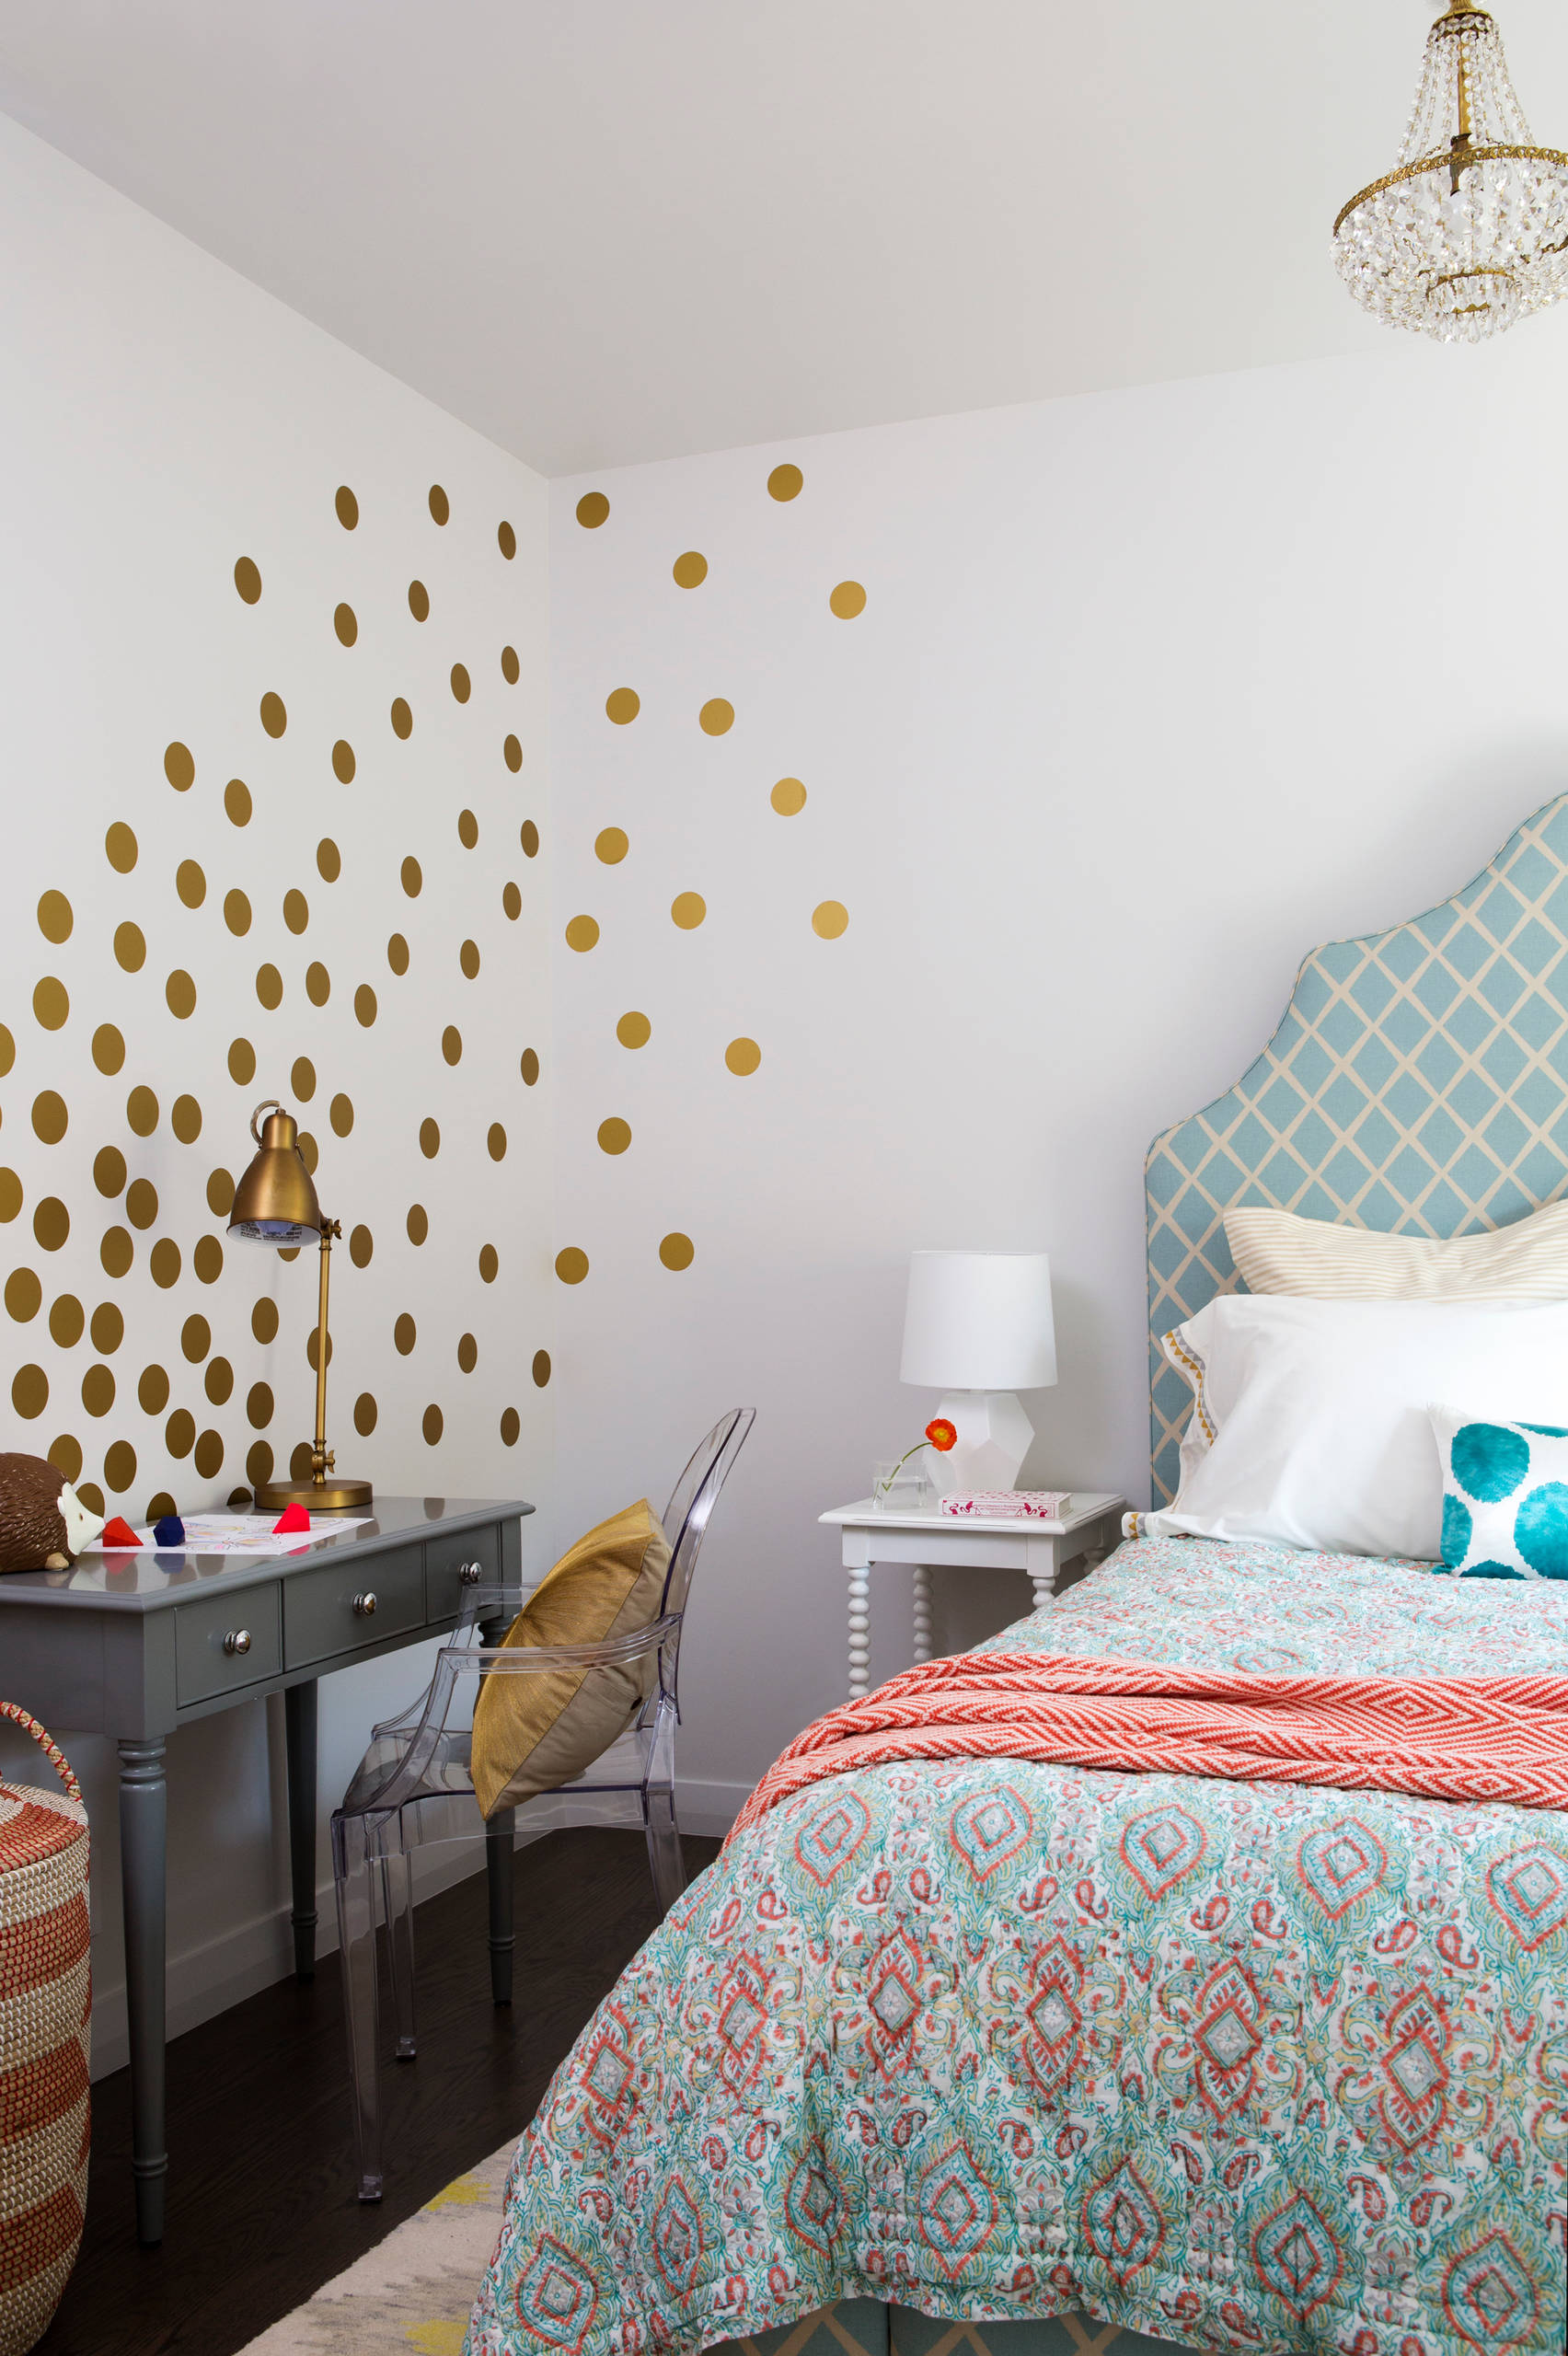 Polka Dot Walls Will Pop Anywhere In Your Home